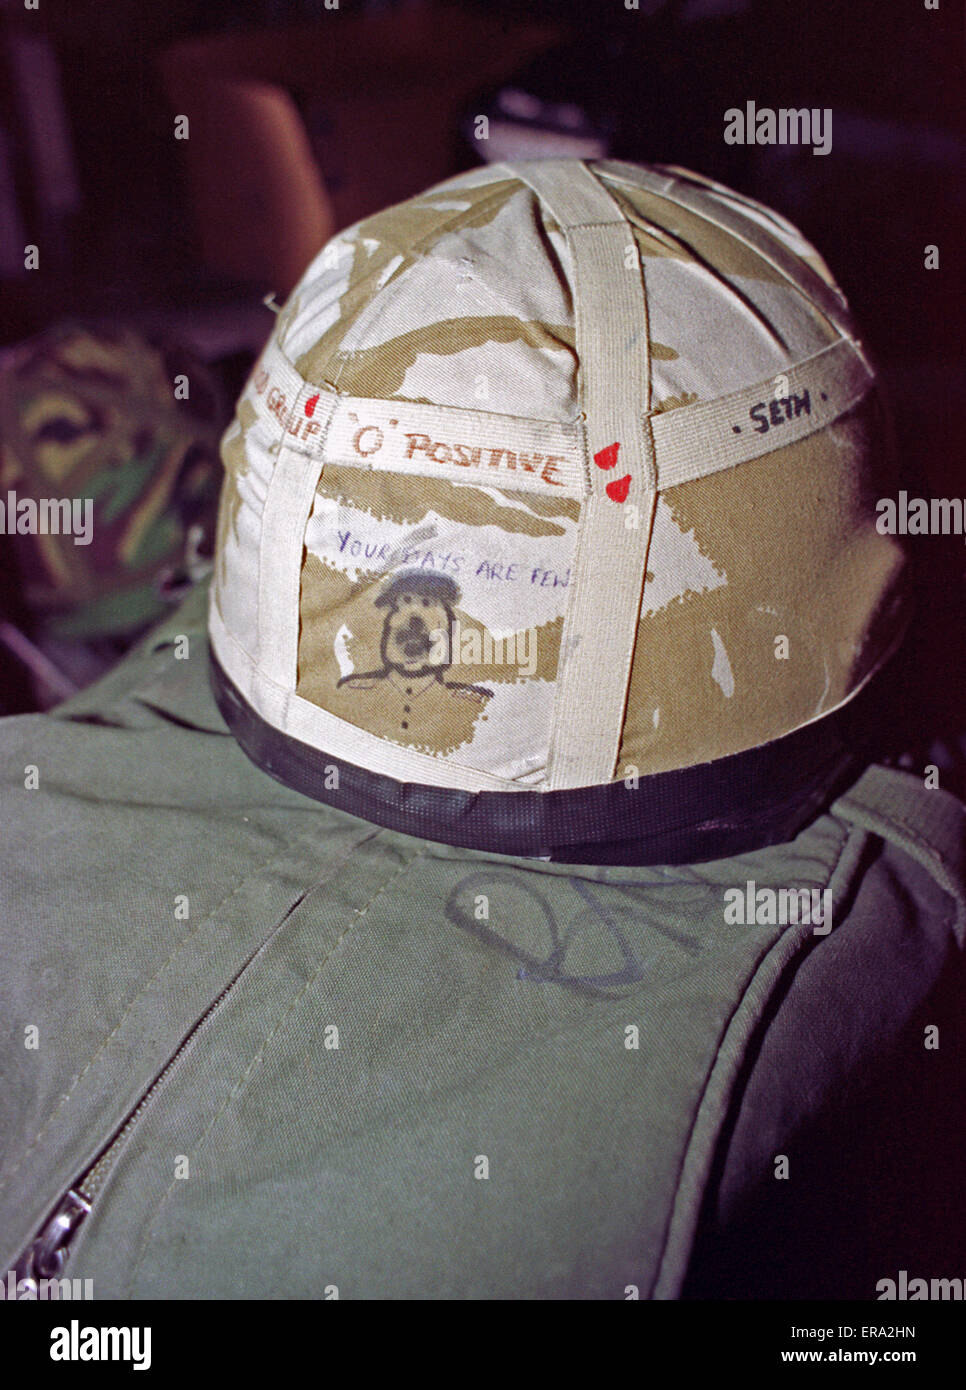 """Late Jan. 1991. A cartoon of Saddam with the caption """"Your days are few"""" on a British soldier's helmet on board - Stock Image"""